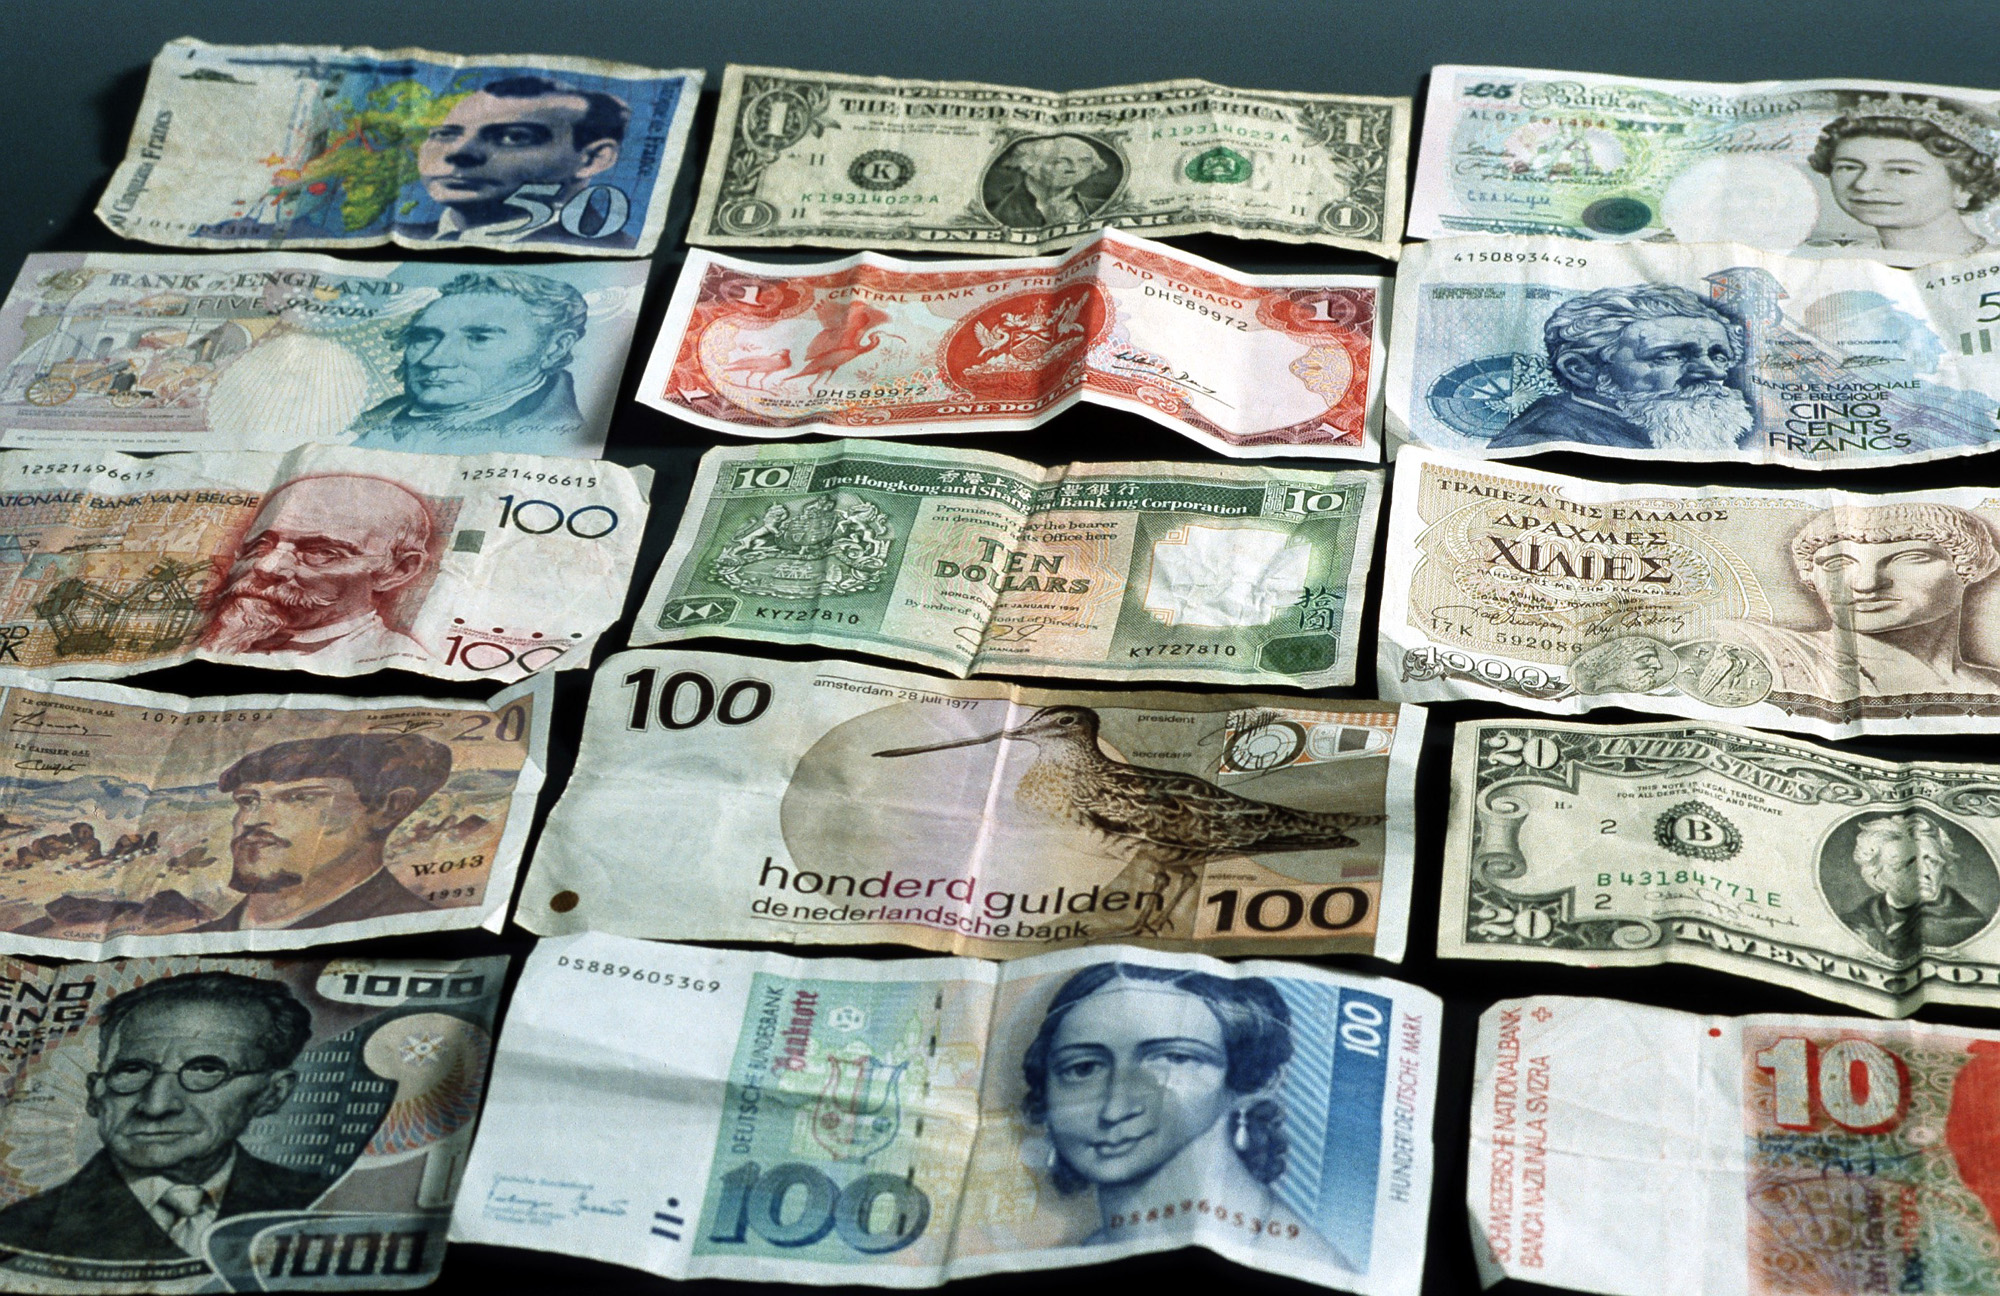 bankbiljet, banknote, gulden, dollar, schilling, frank, franc, pounds, buitenland, geld, money, financieel, briefgeld, bills, papiergeld